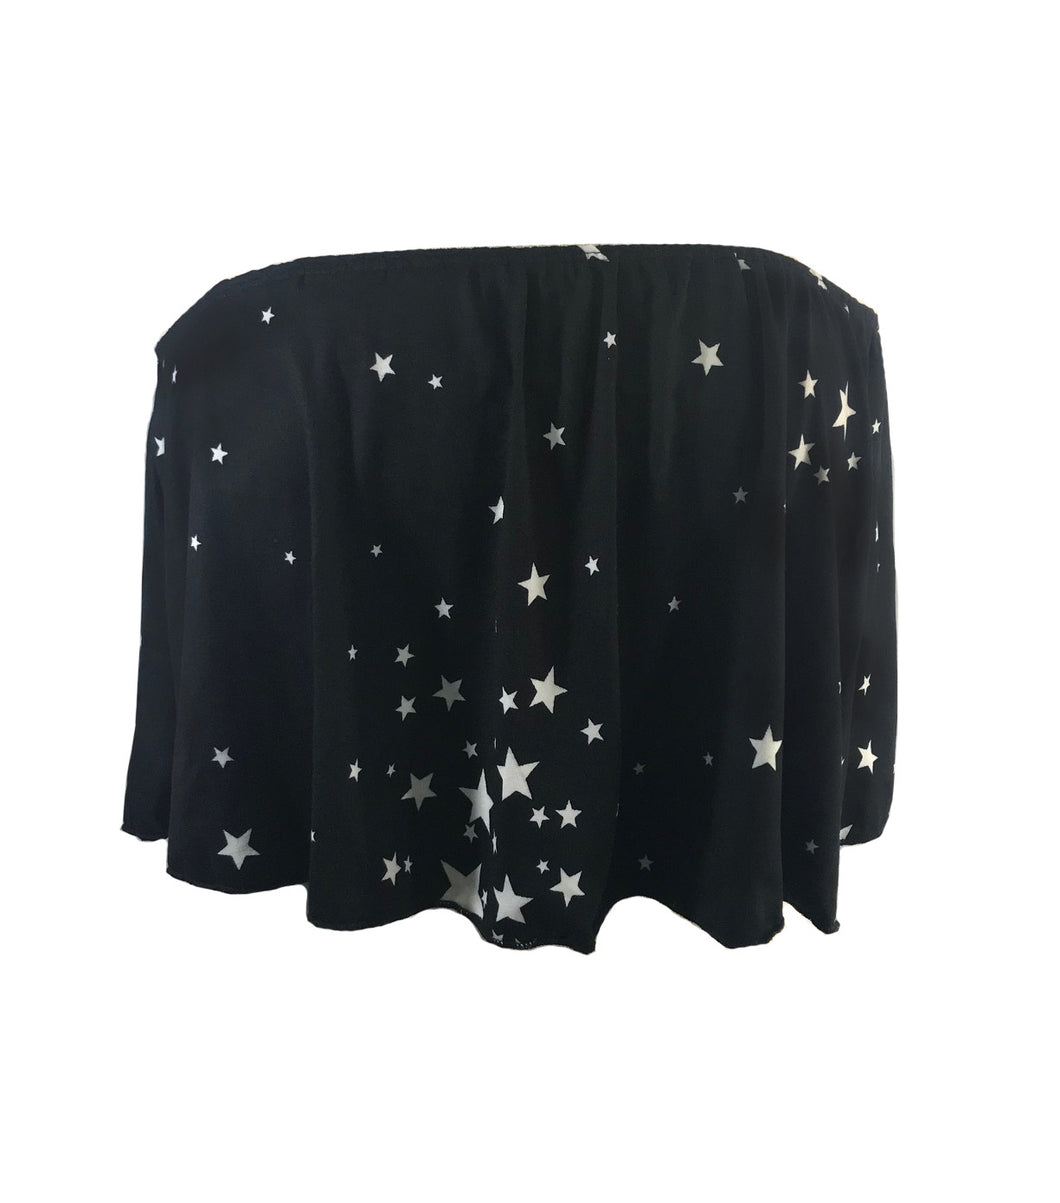 BLACK STARS BANDEAU TOP - Trailsclothing.com